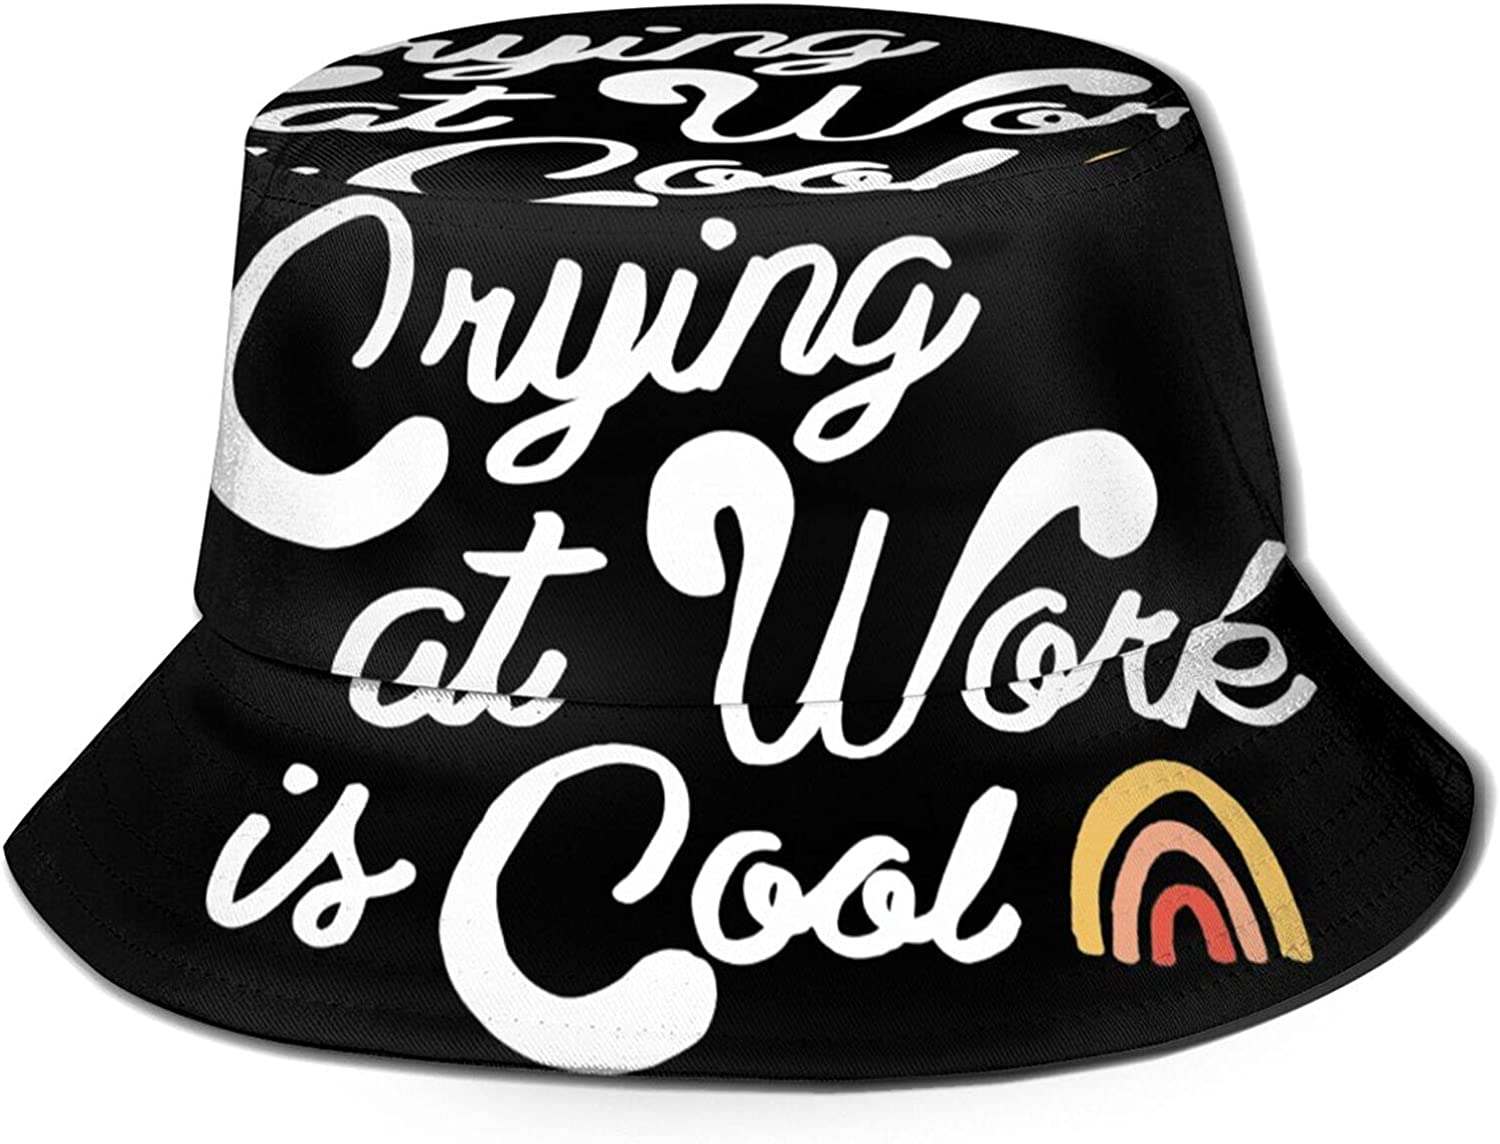 Crying Luxury goods is Cool1 Bucket Hat Price reduction Summer Fisher Sun Packable Unisex